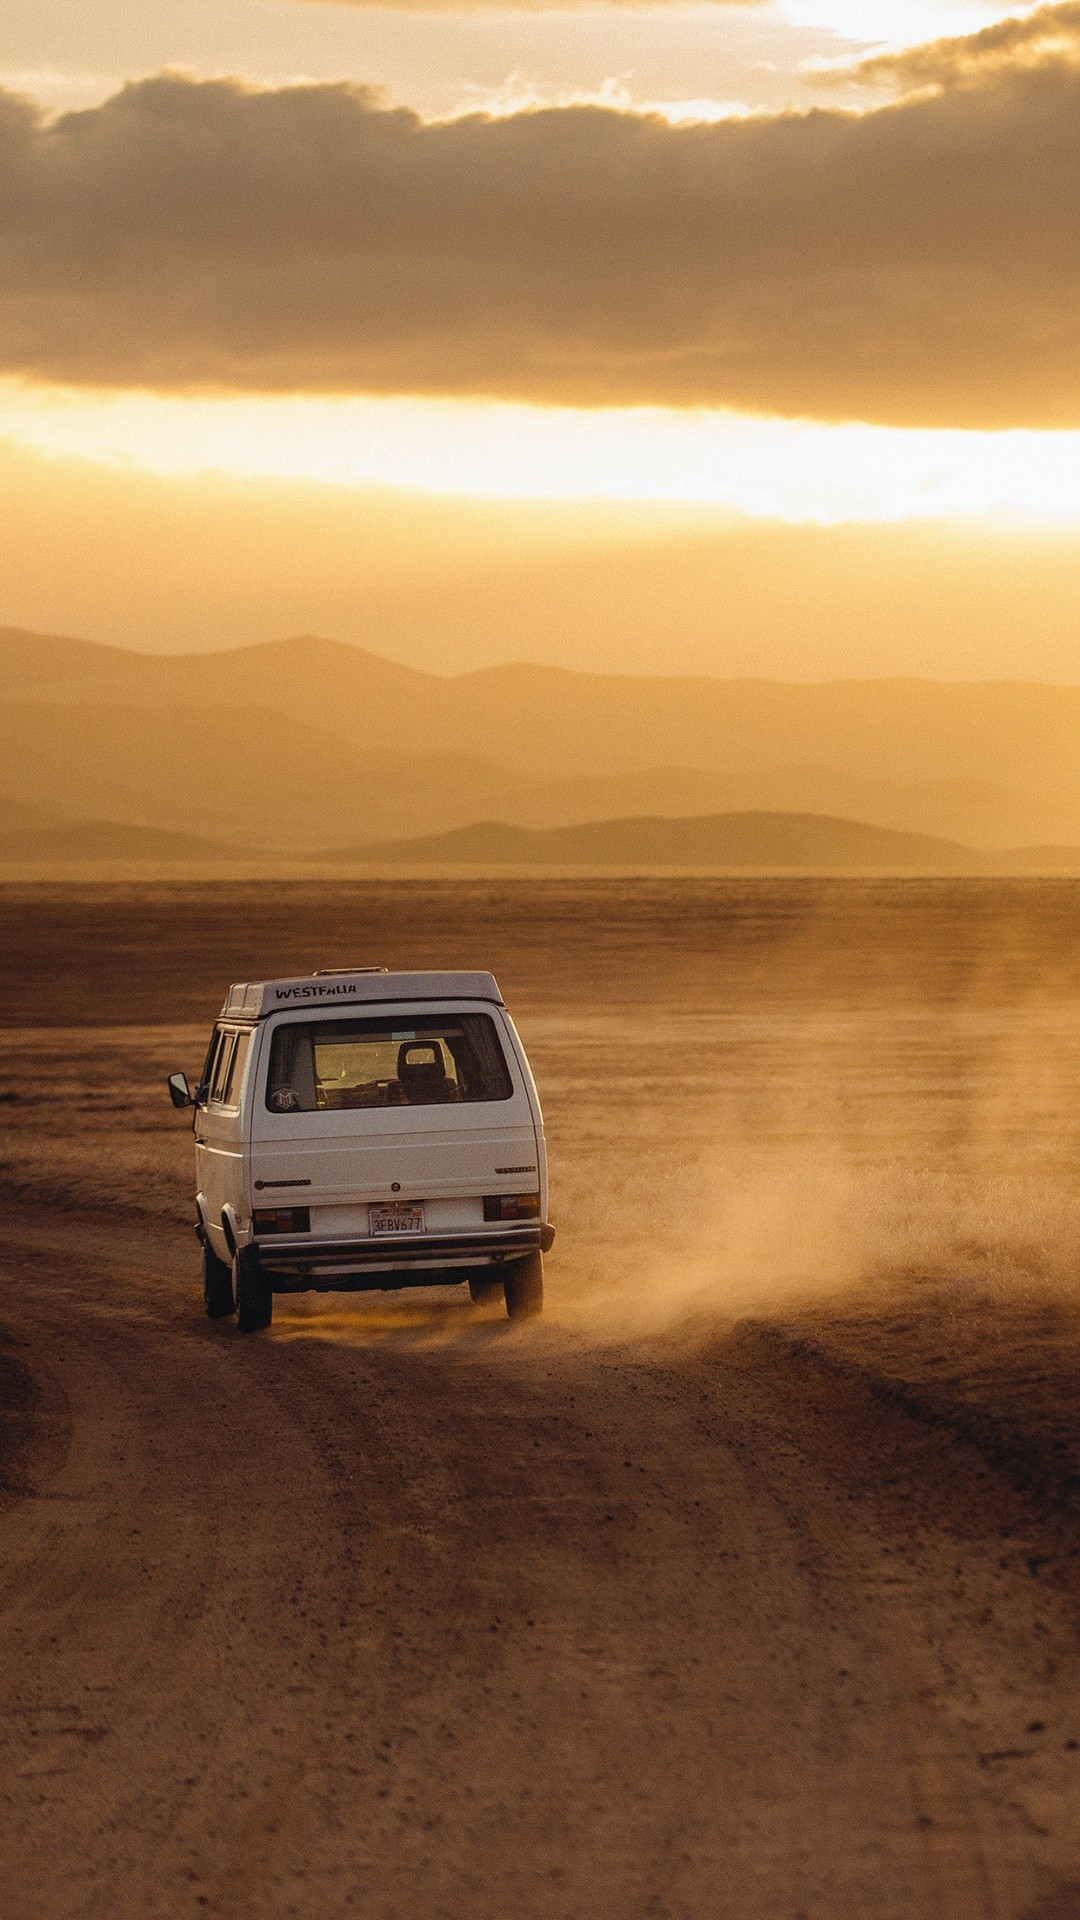 1080x1920 Volkswagen Transporter Desert Roadtrip iPhone 8 wallpaper